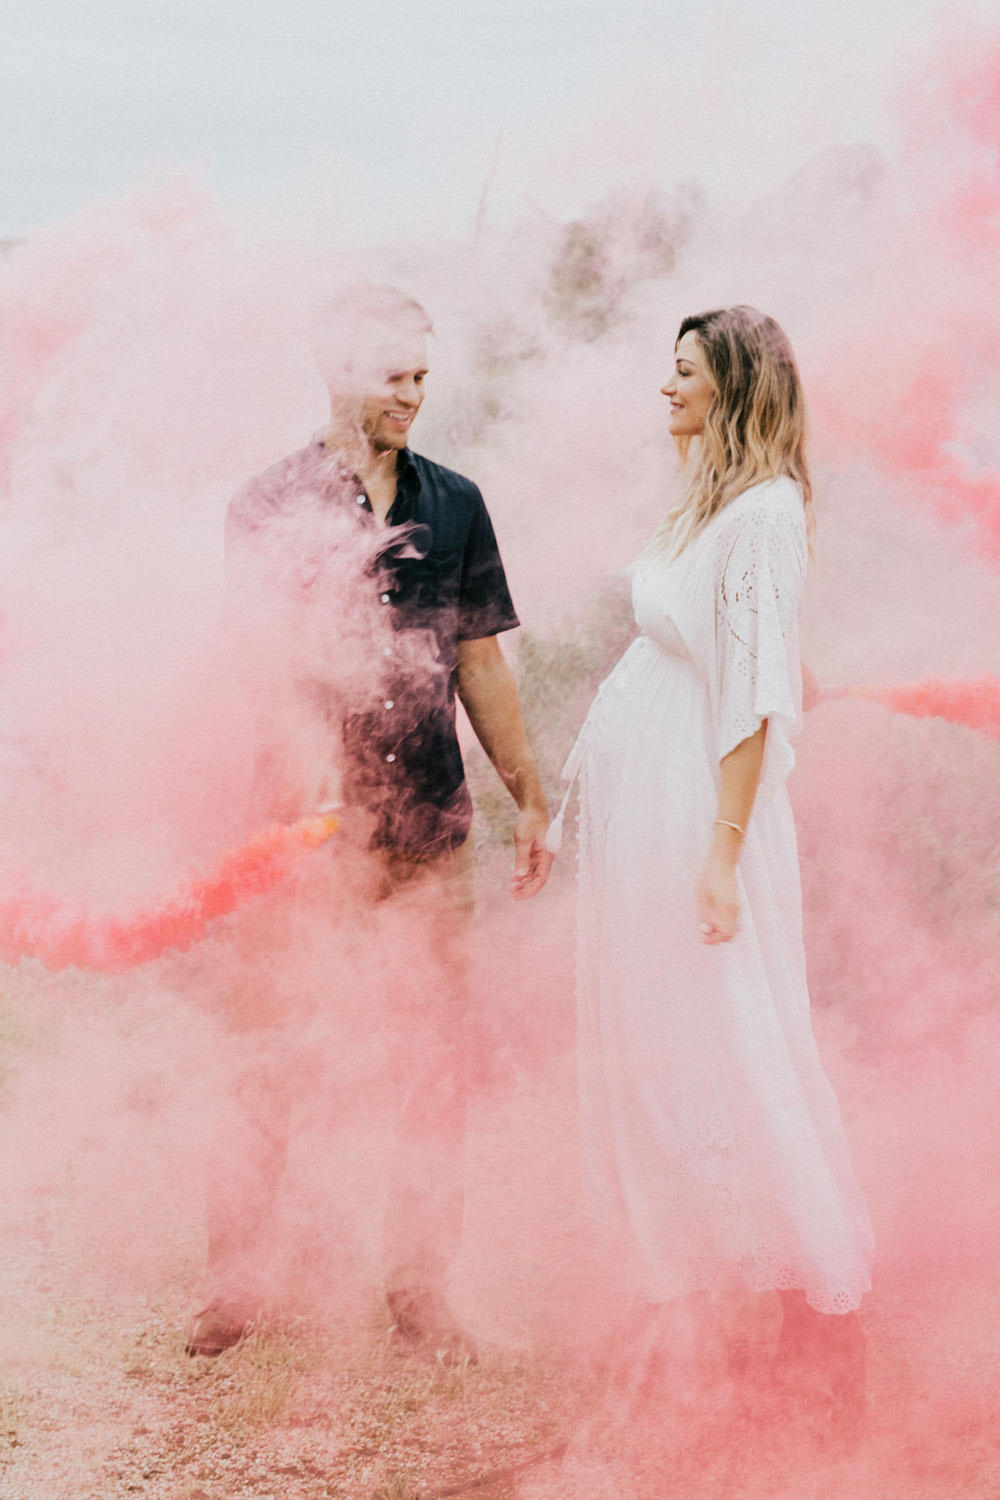 Dash of Darling shares her gender reveal on her first viable pregnancy post IVF treatments